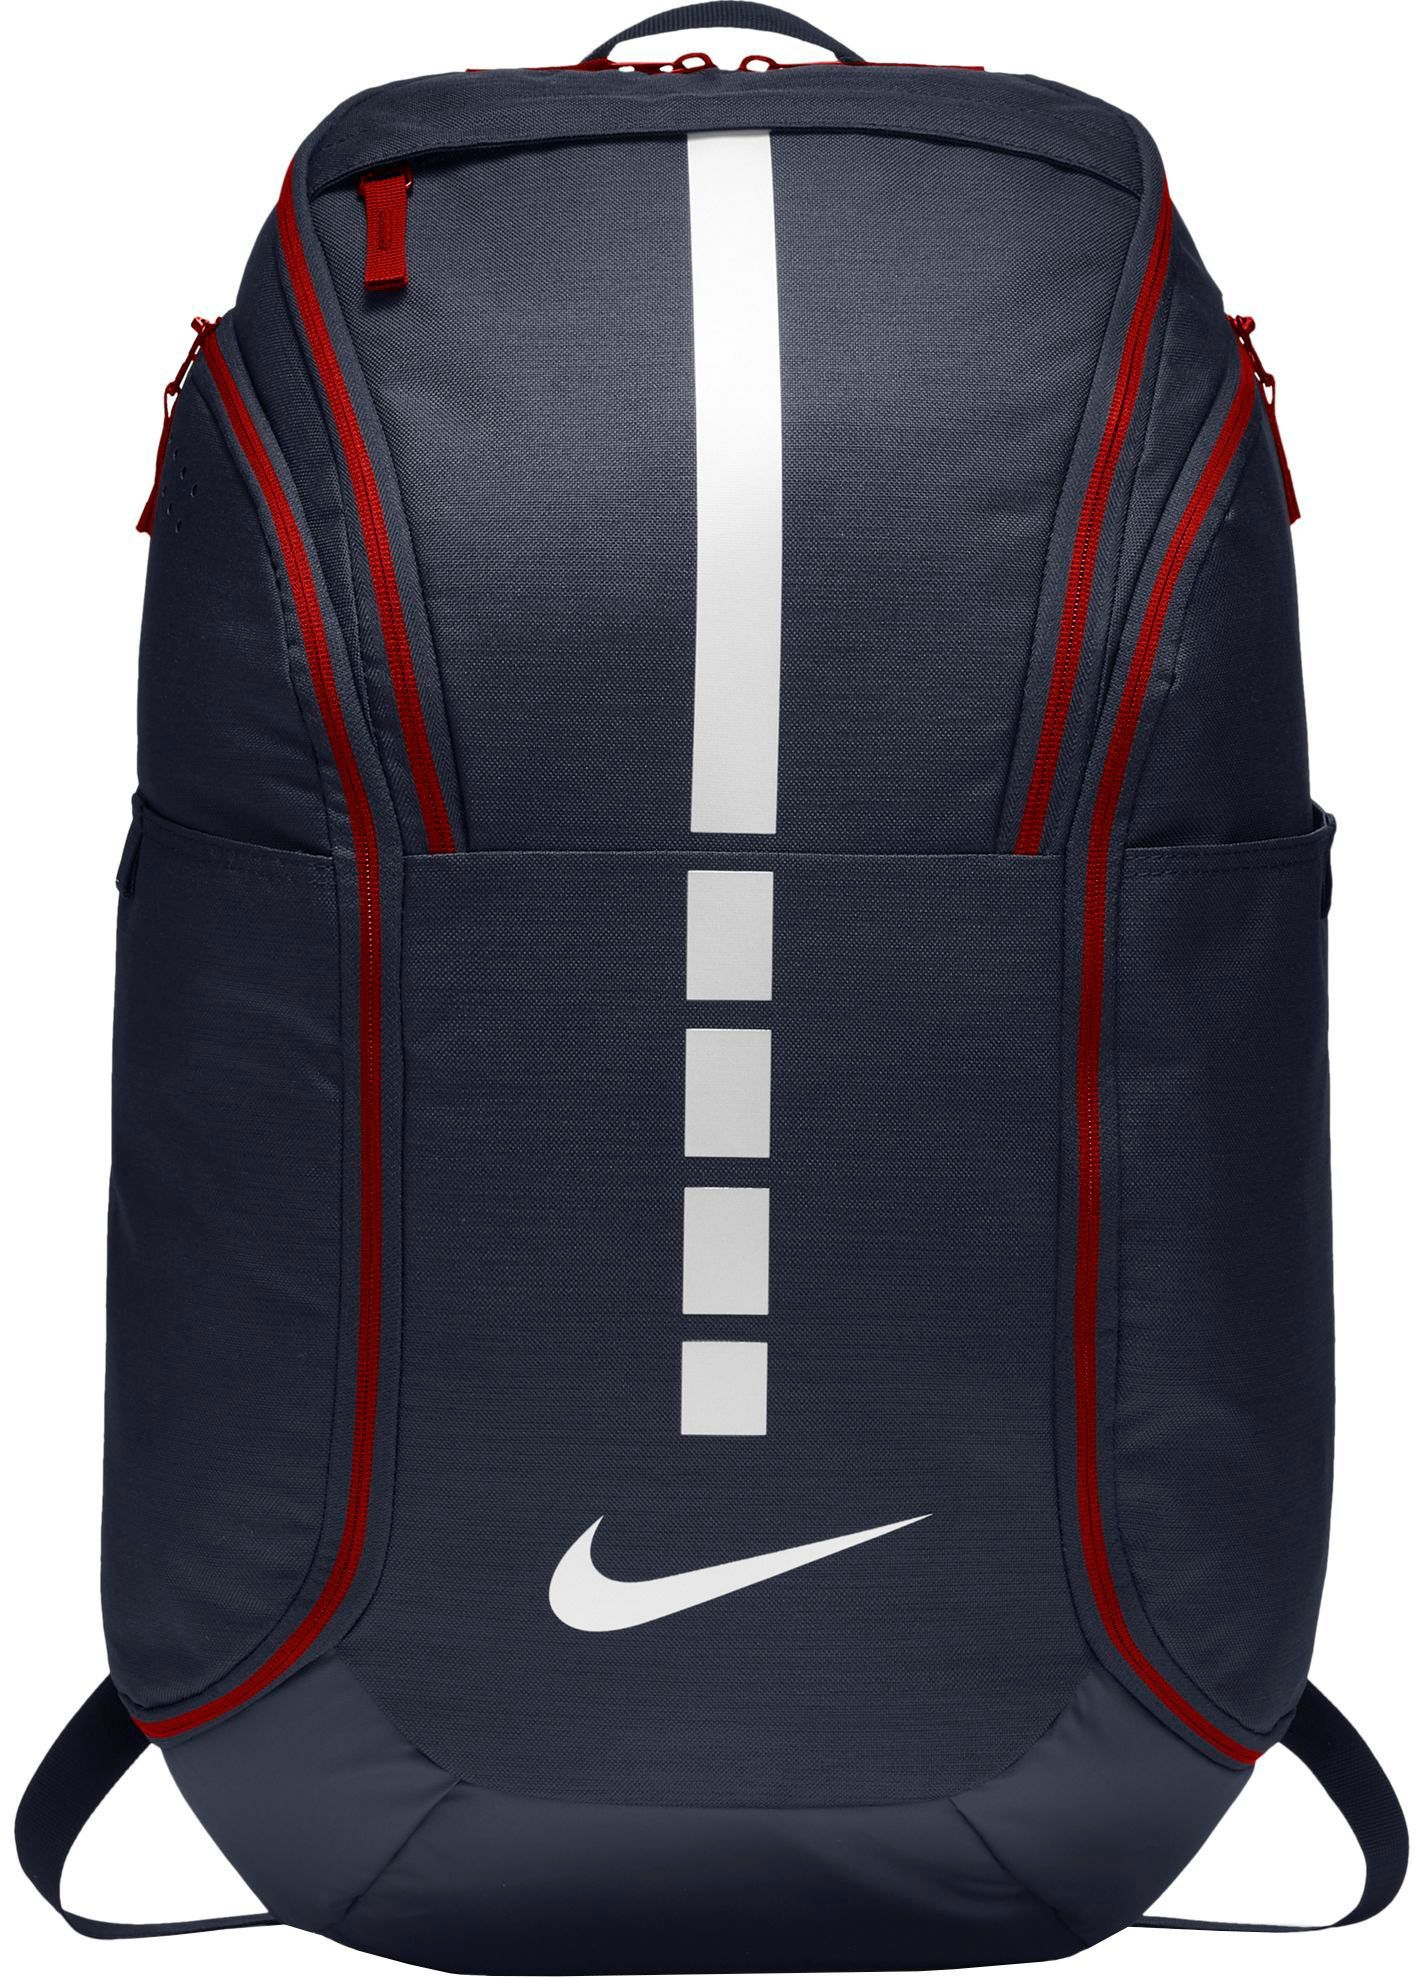 64c702a715b Nike Hoops Elite Pro Basketball Backpack in 2019 | Products | Pro ...